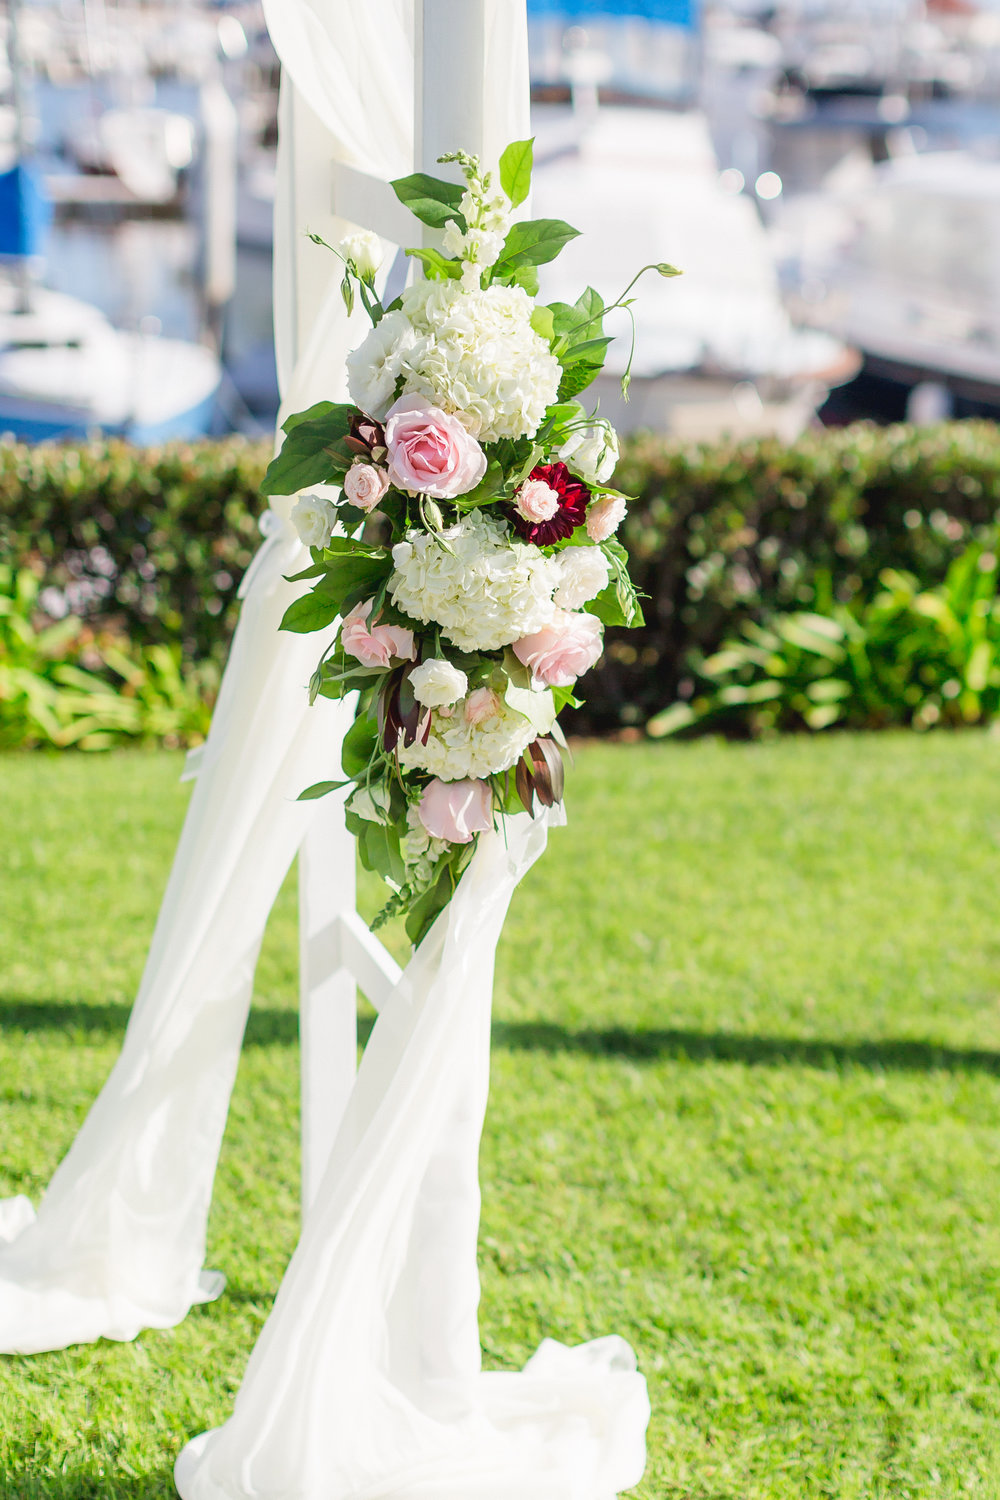 Becca_Mark_Southwestern_Yacht_Club_Wedding_183.jpg